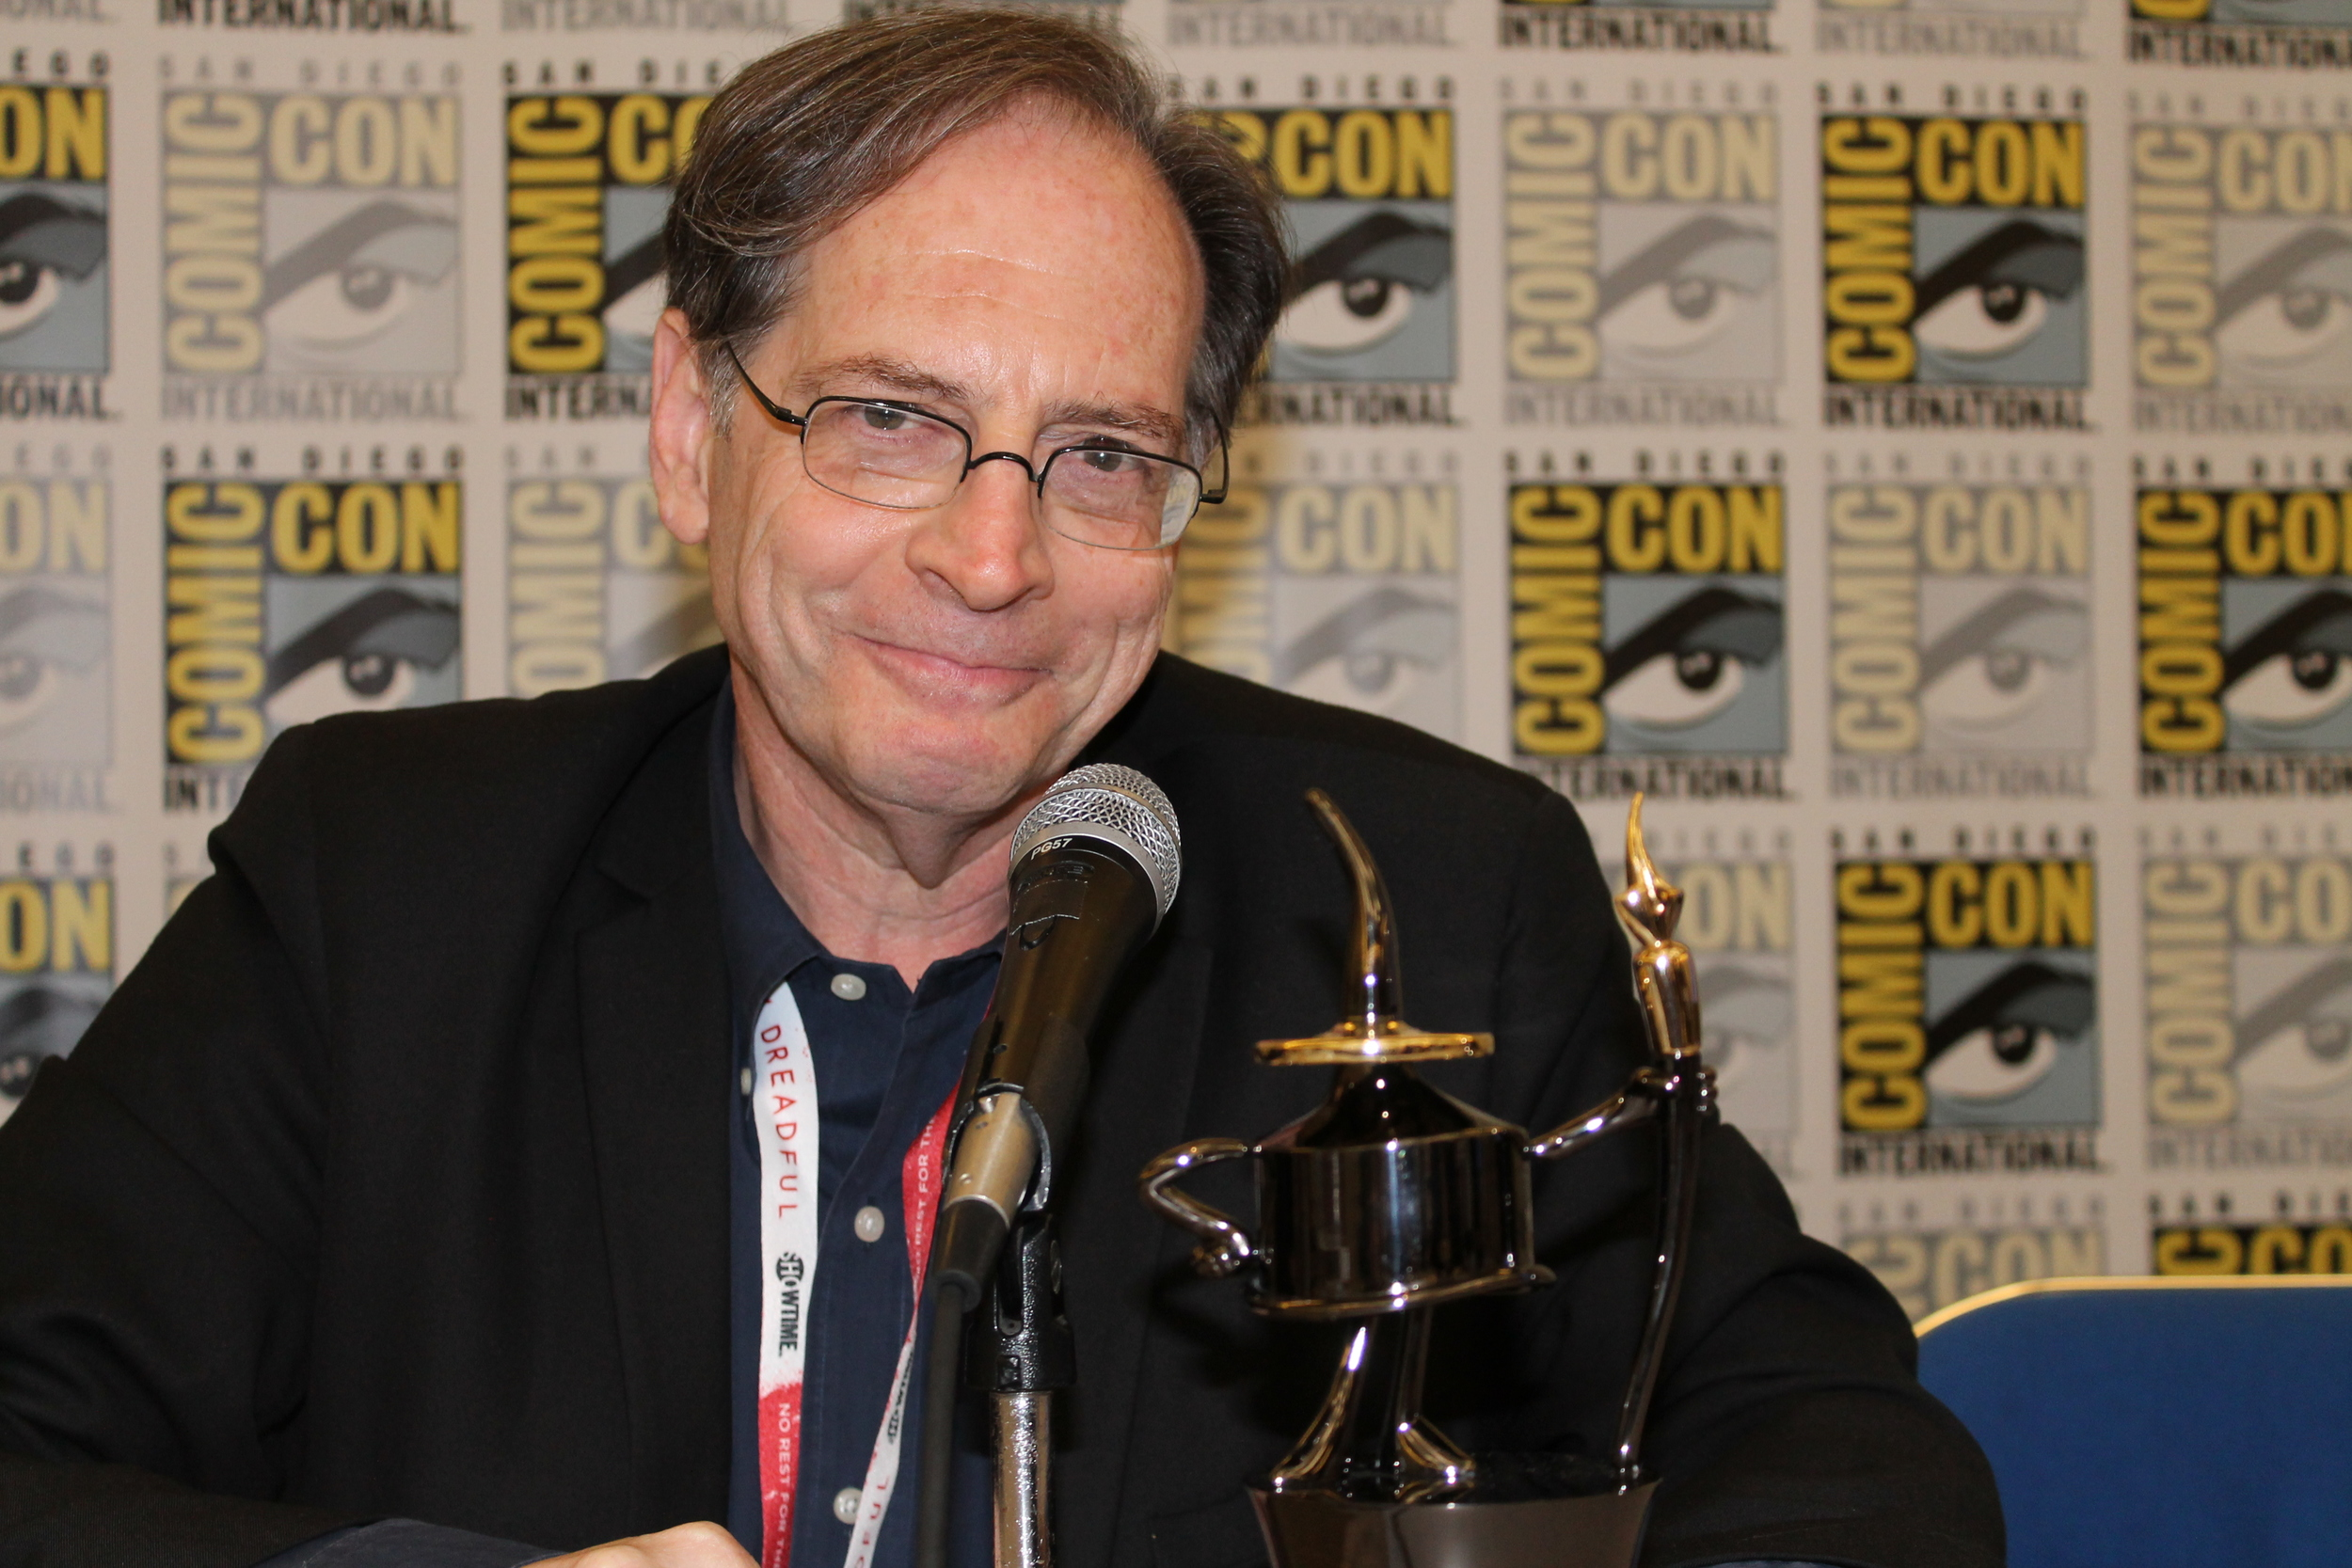 Jerry Beck, with the Ink Pot Award.